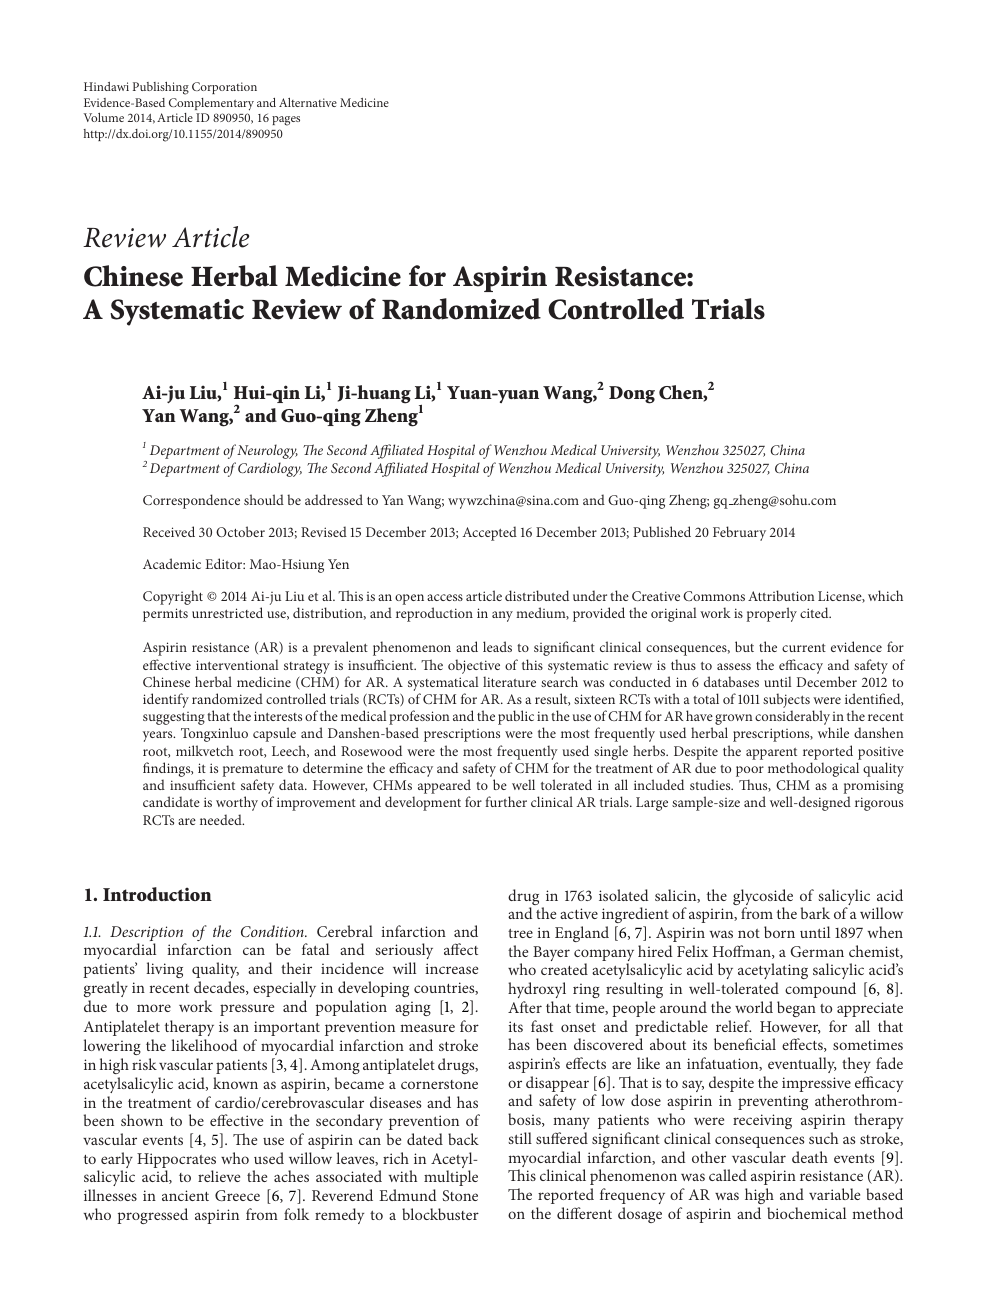 Chinese Herbal Medicine for Aspirin Resistance: A Systematic Review